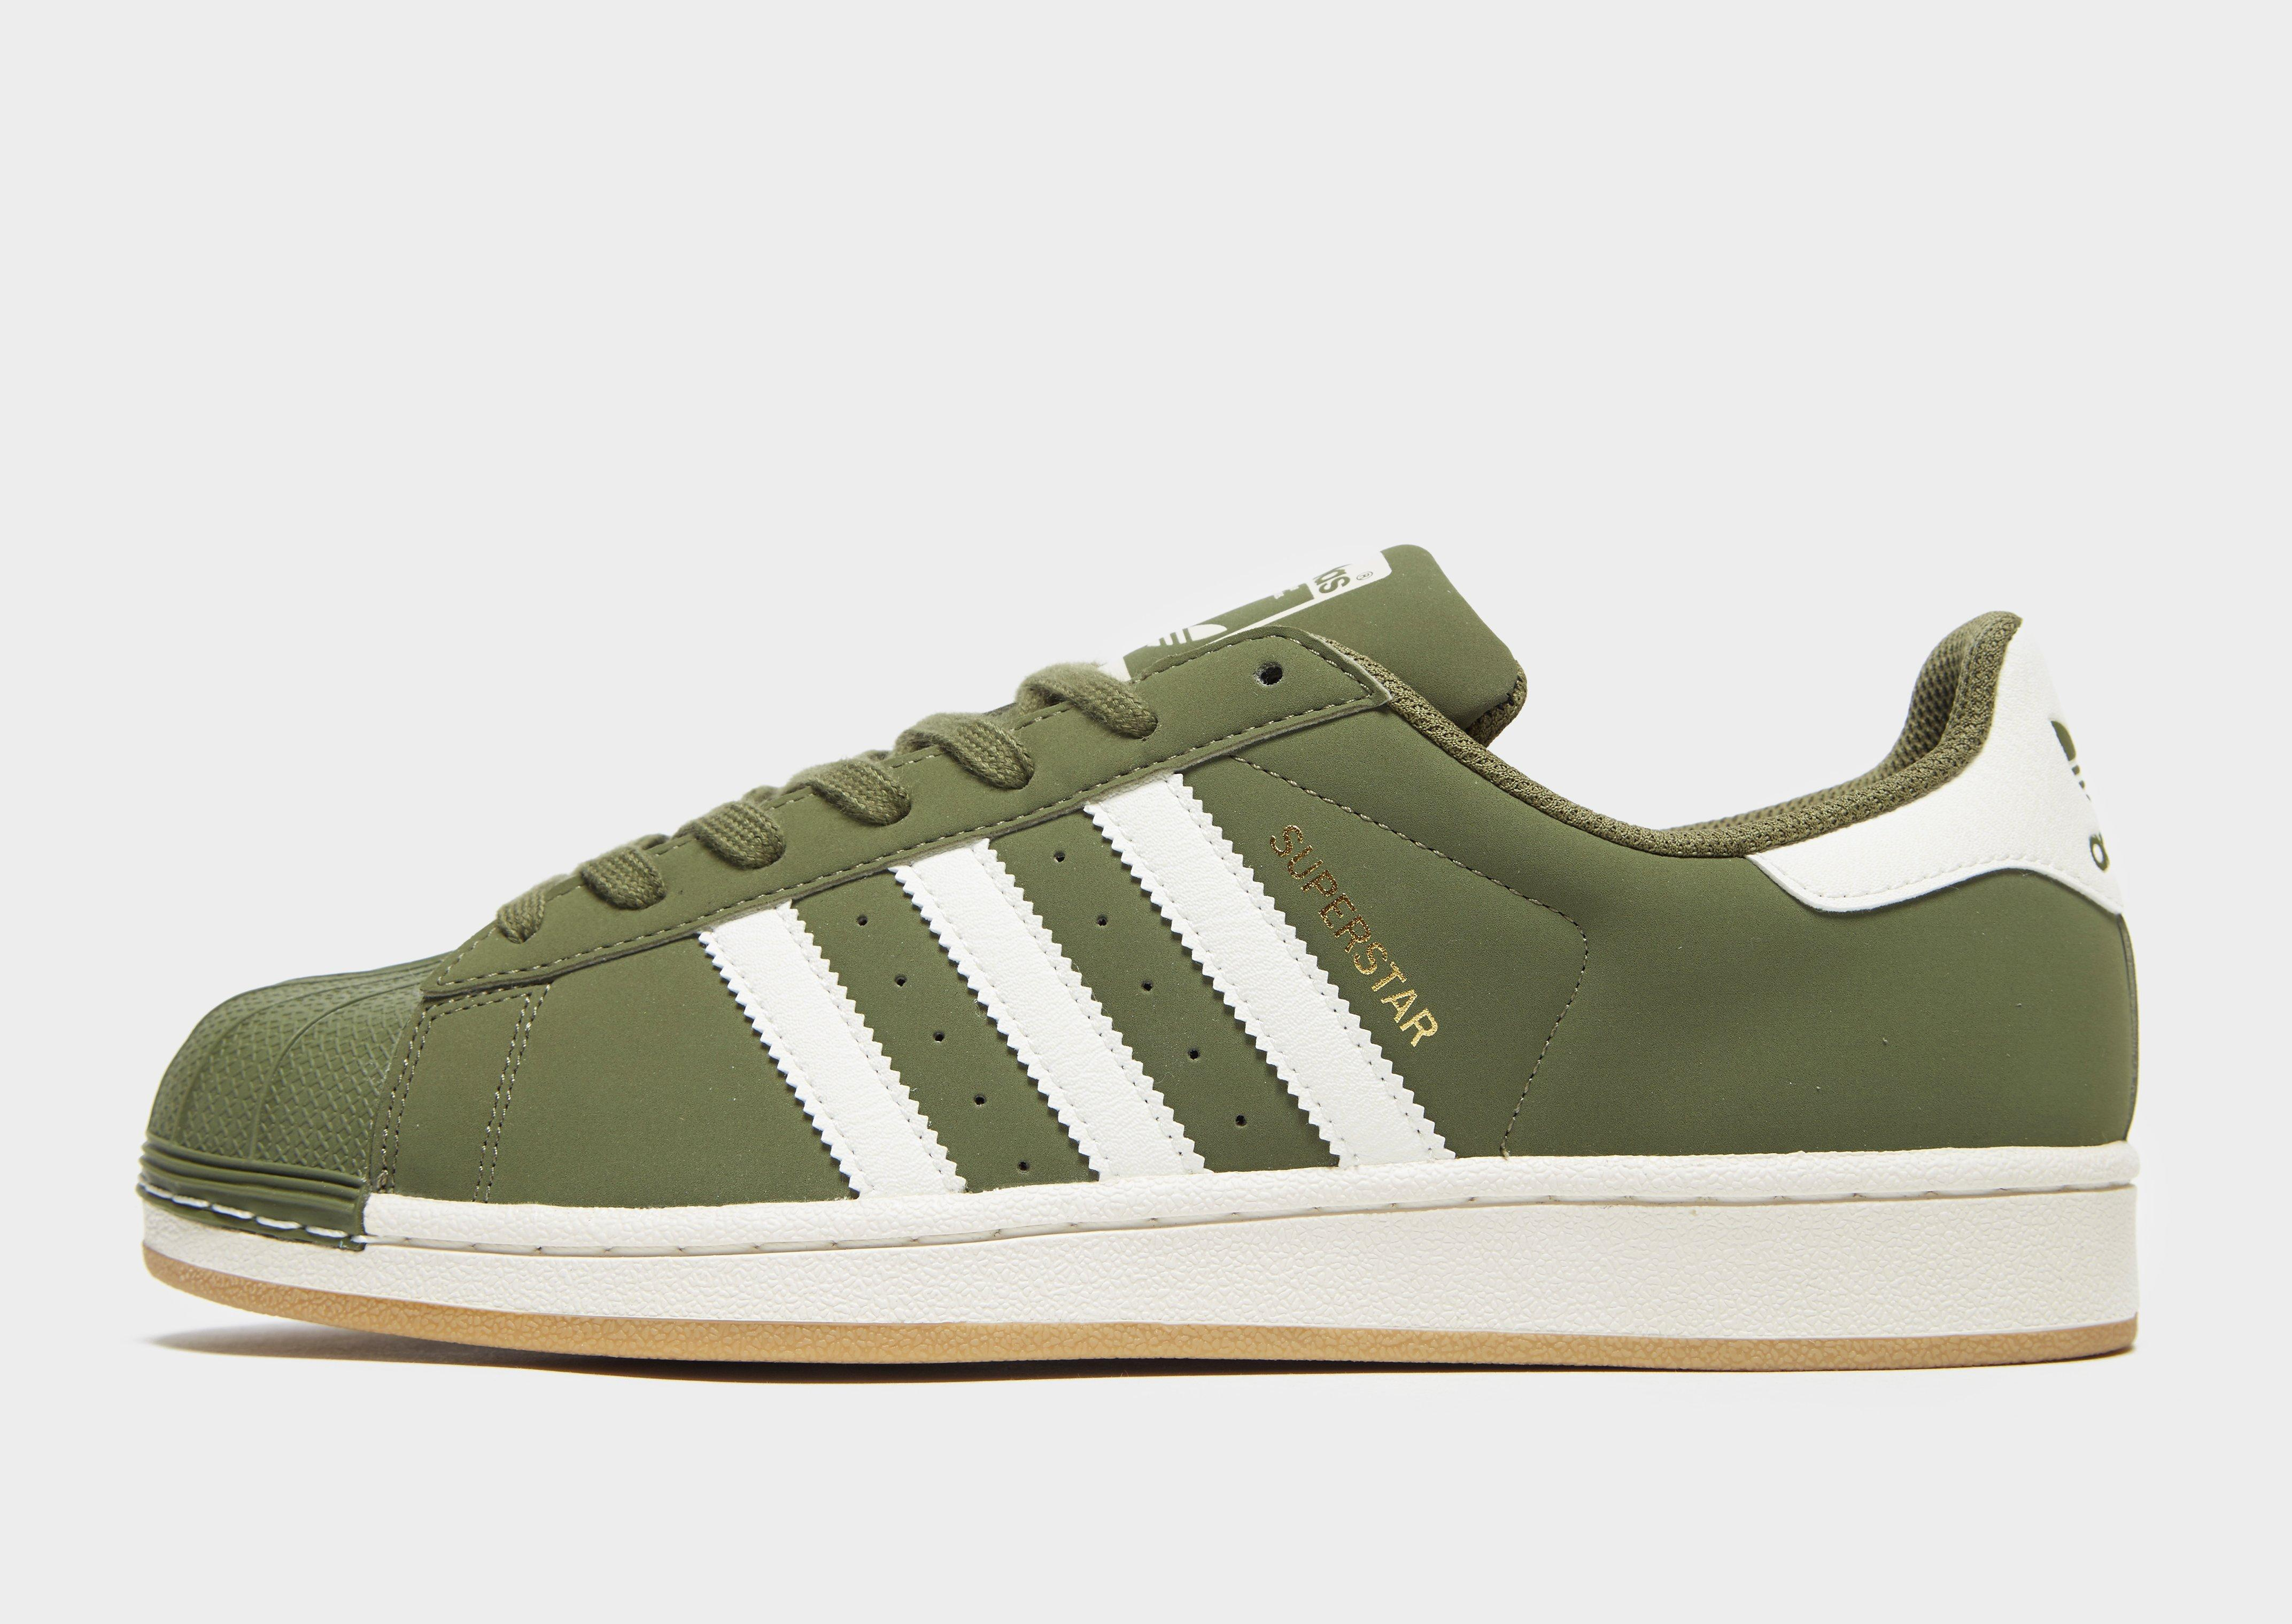 Originals Superstar New OliveEbay Men's Adidas Sneakers gvbY76fIy